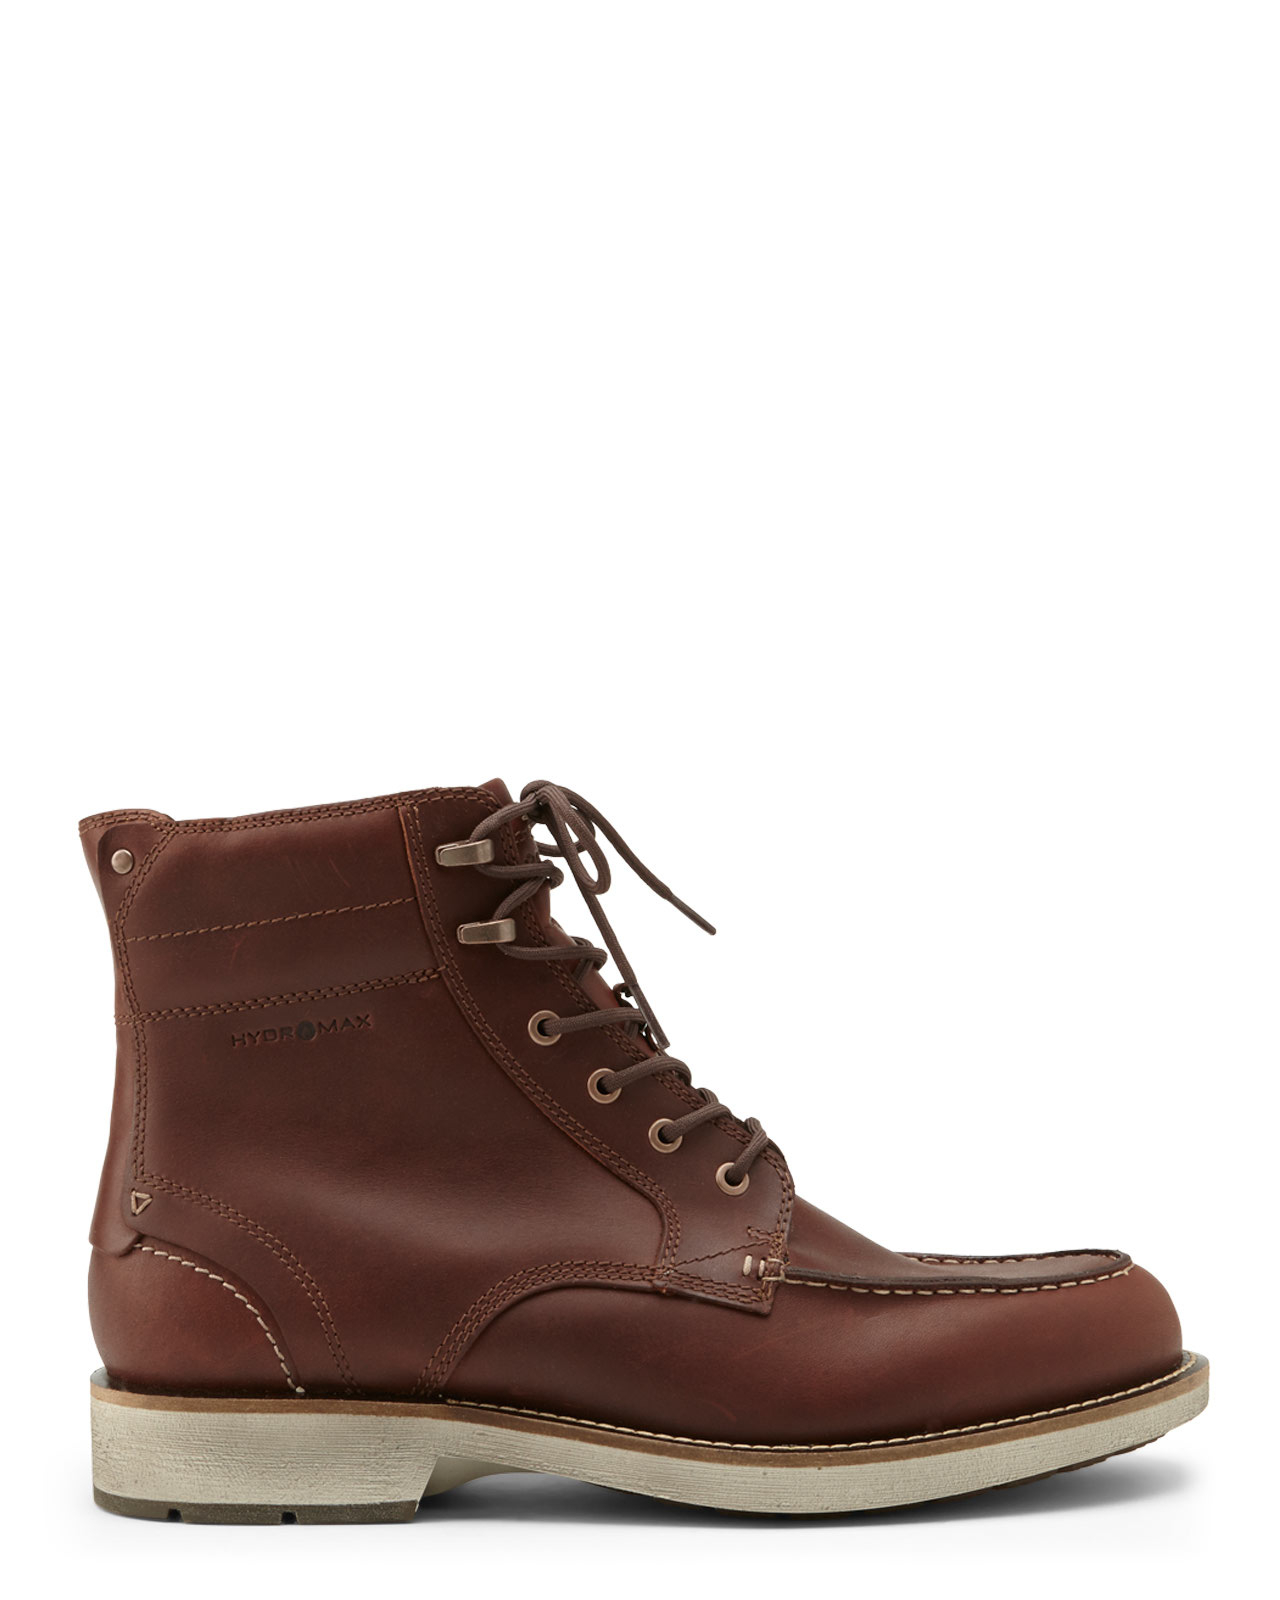 the latest cute cheap large discount Ecco Bendix Lace-Up Boots in Rust (Brown) for Men - Lyst